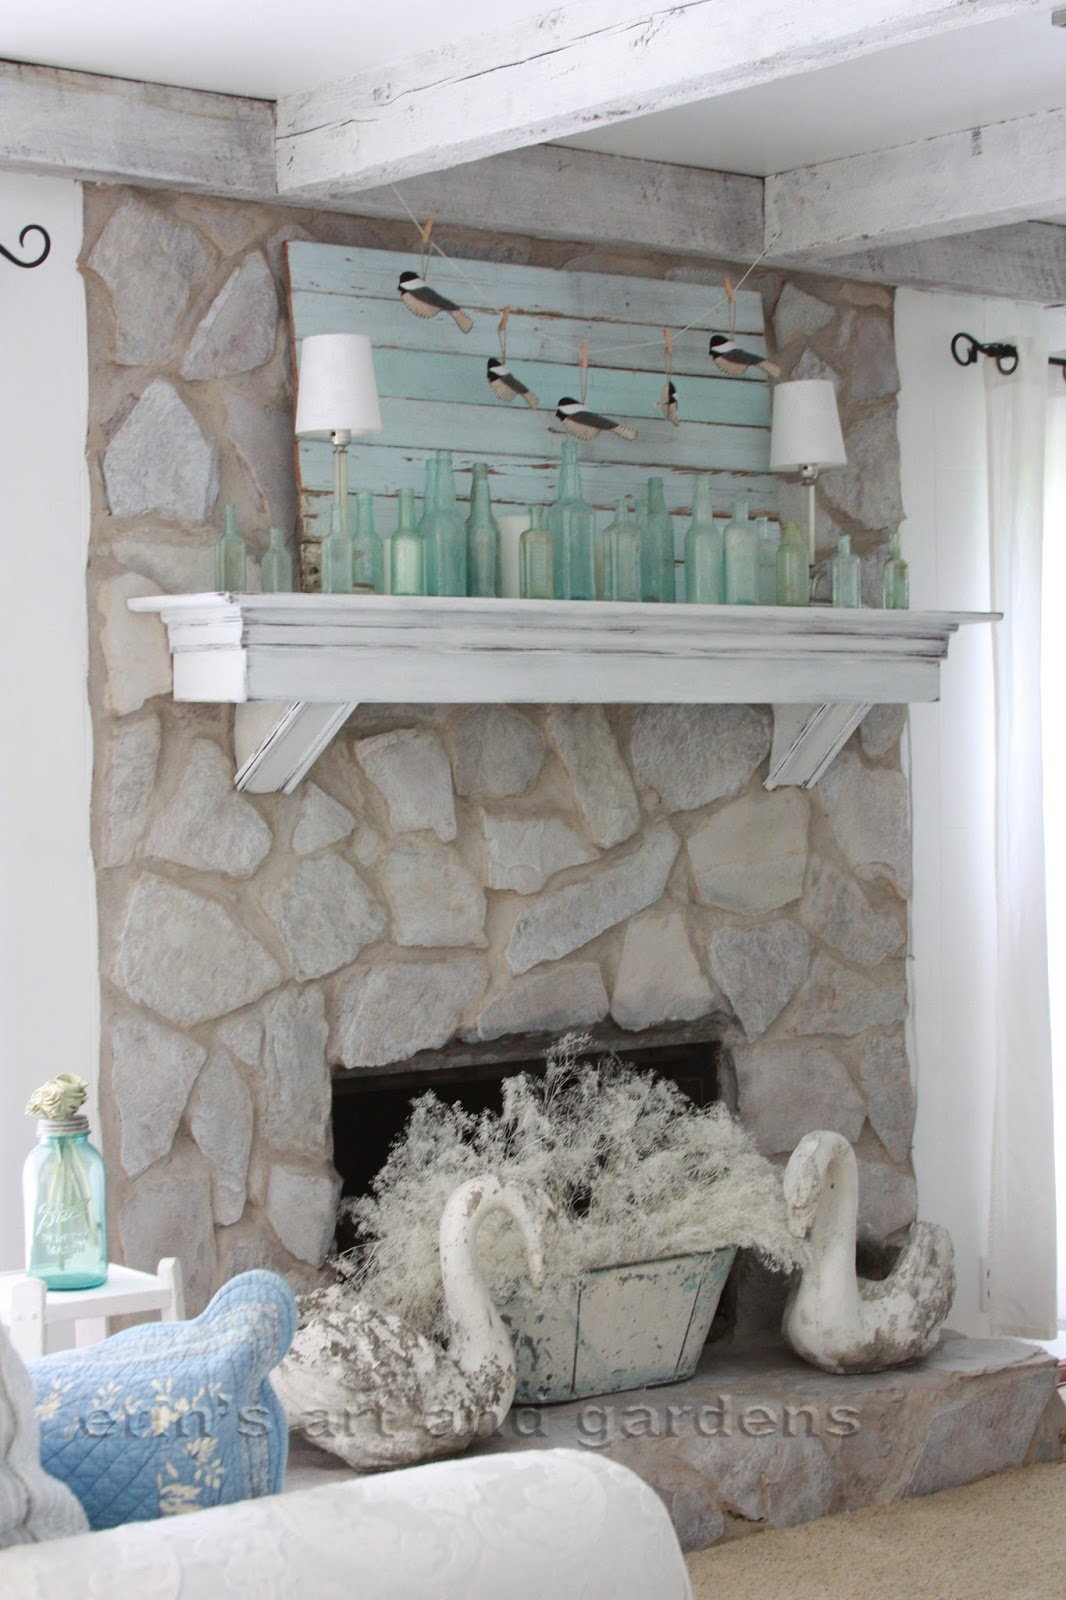 Pin by Diana Lazic on DIY Projects of 2015 | Stone ...